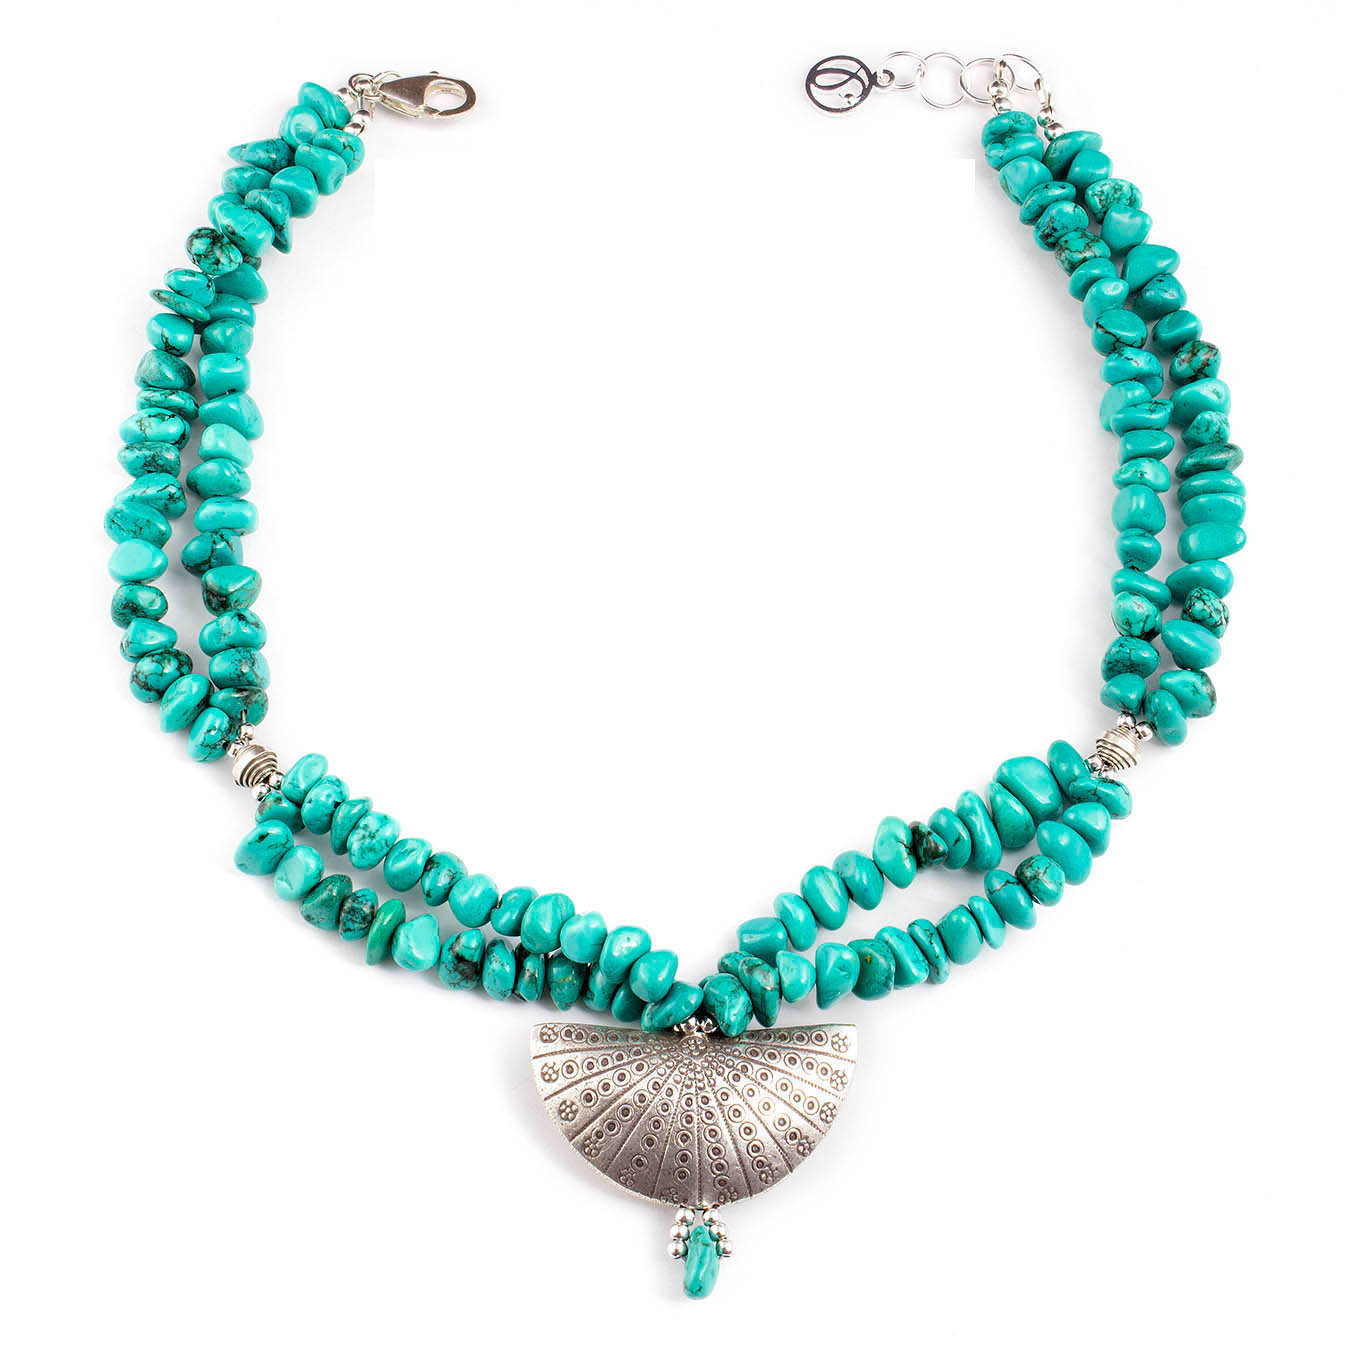 Handcrafted December birthstone jewelry made of turquoise and Silver